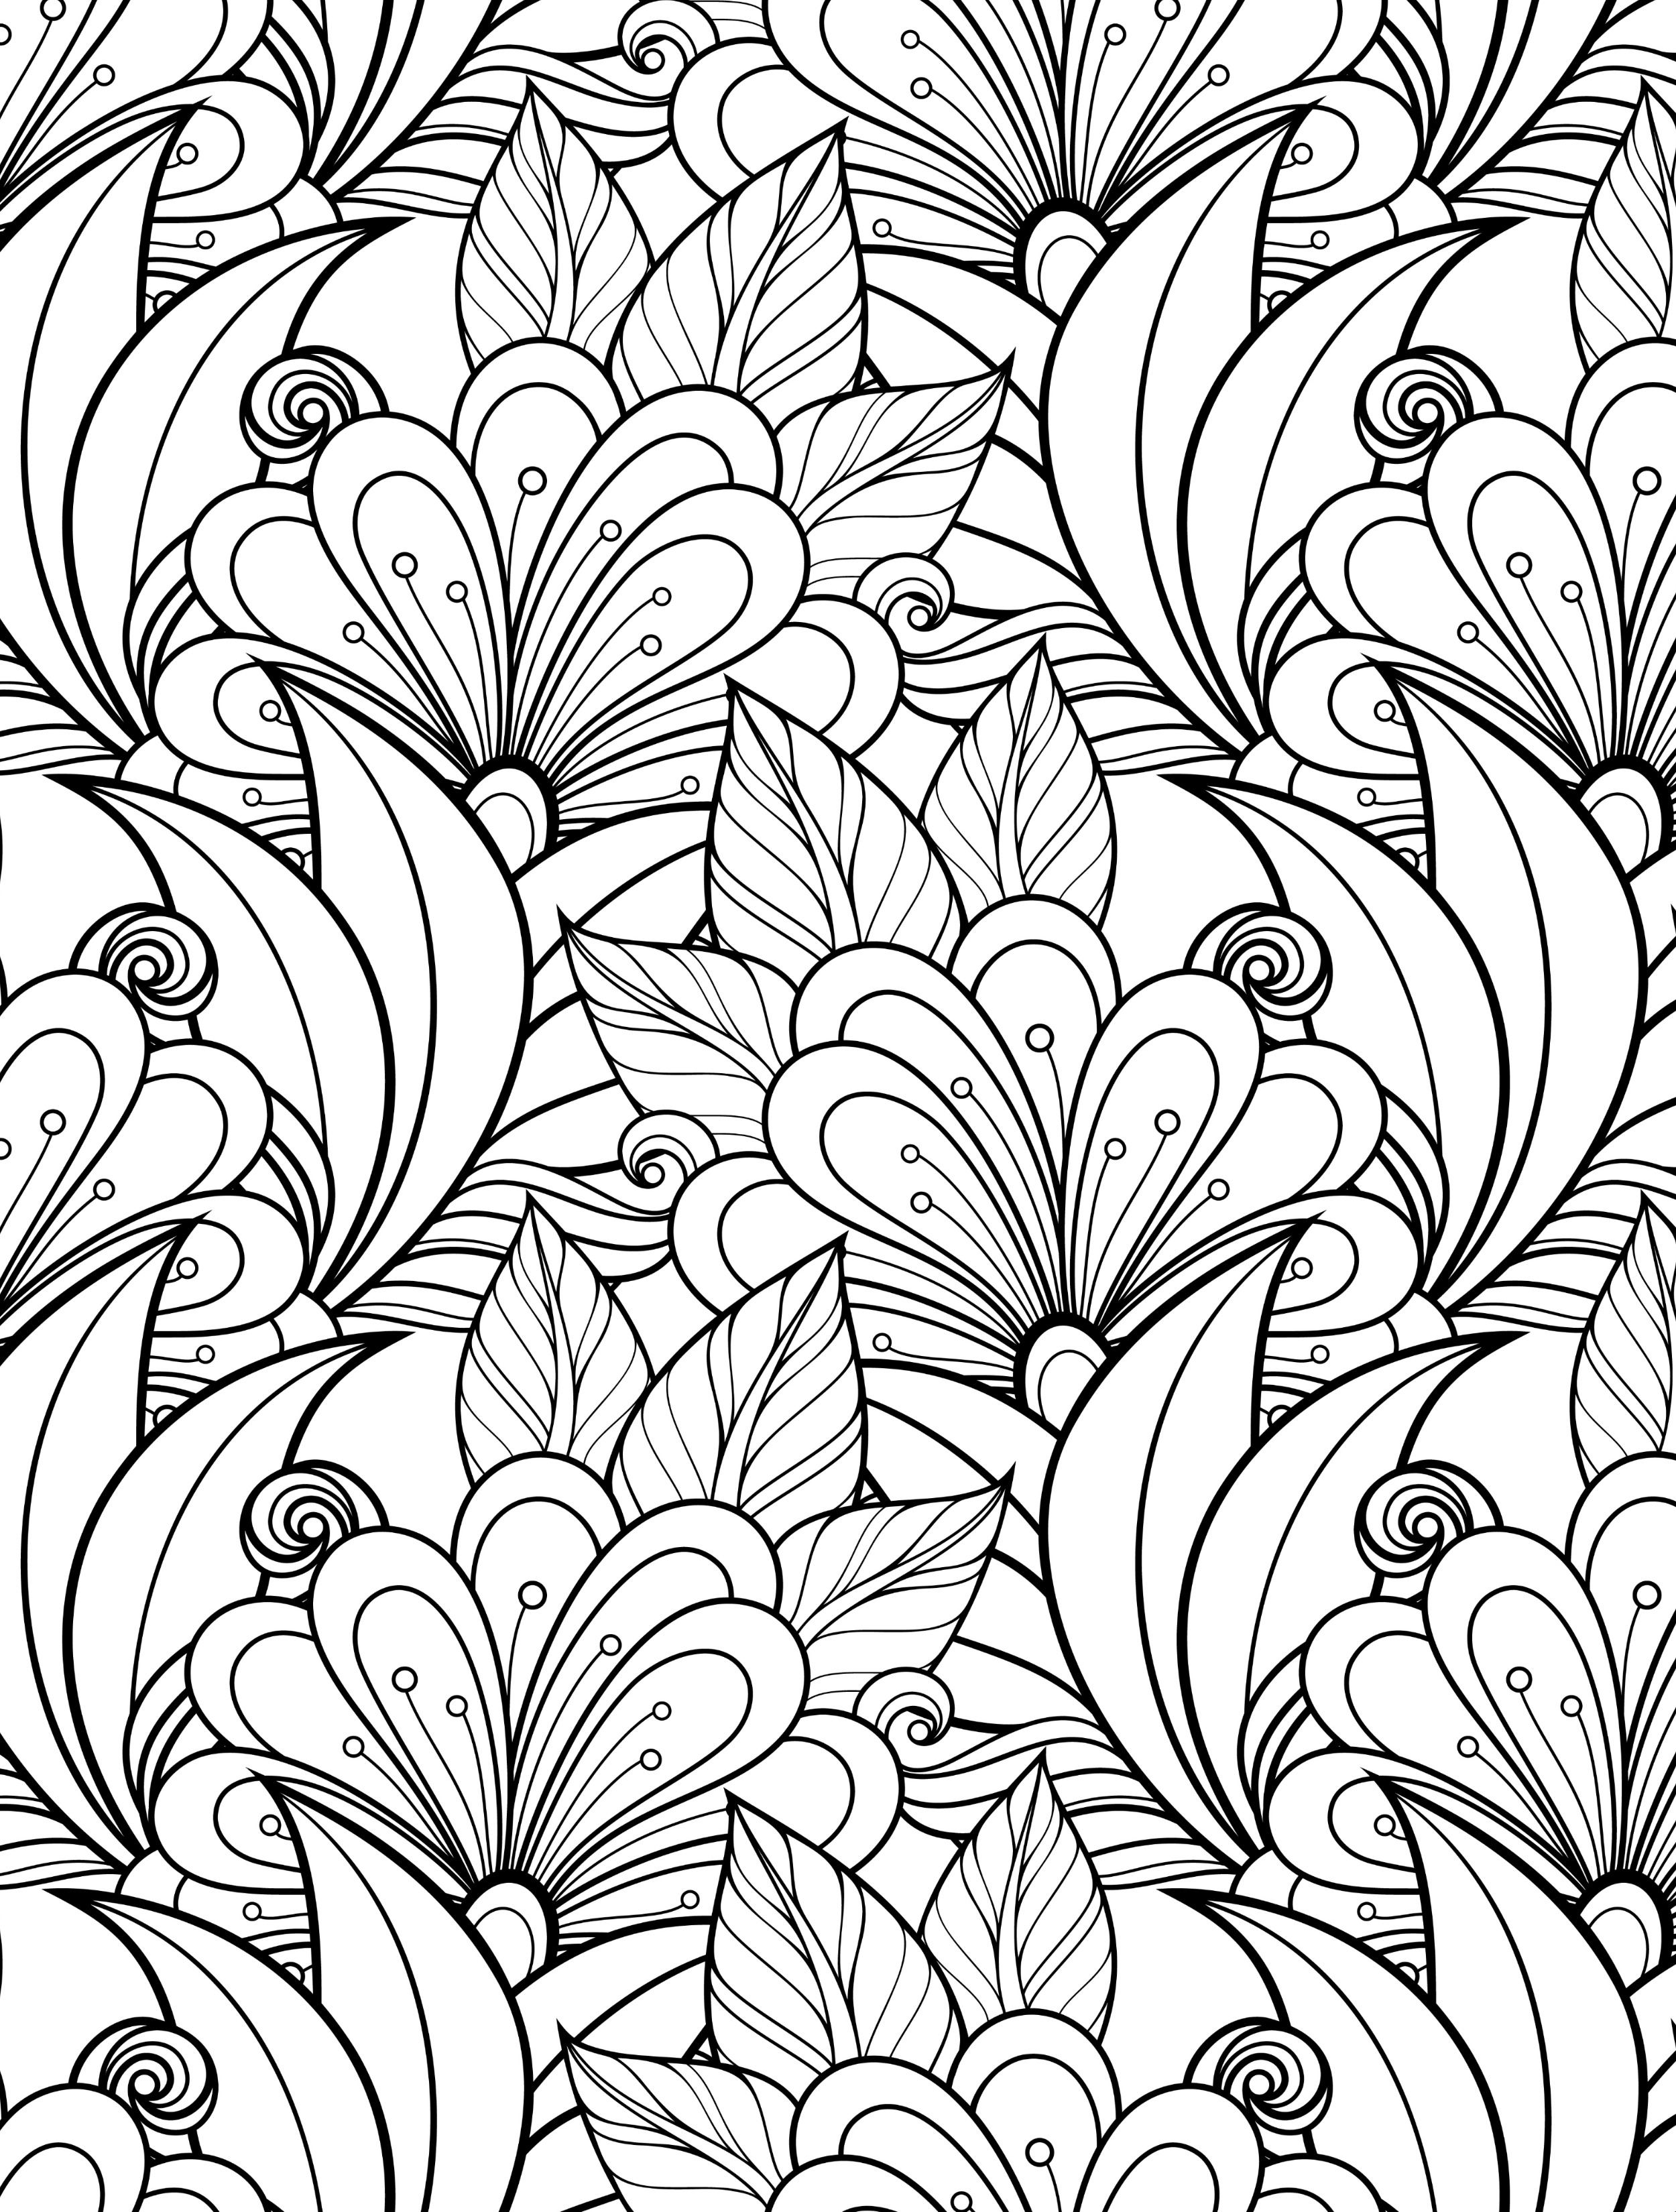 coloring books for adults online hard coloring pages for adults best coloring pages for kids online adults coloring books for